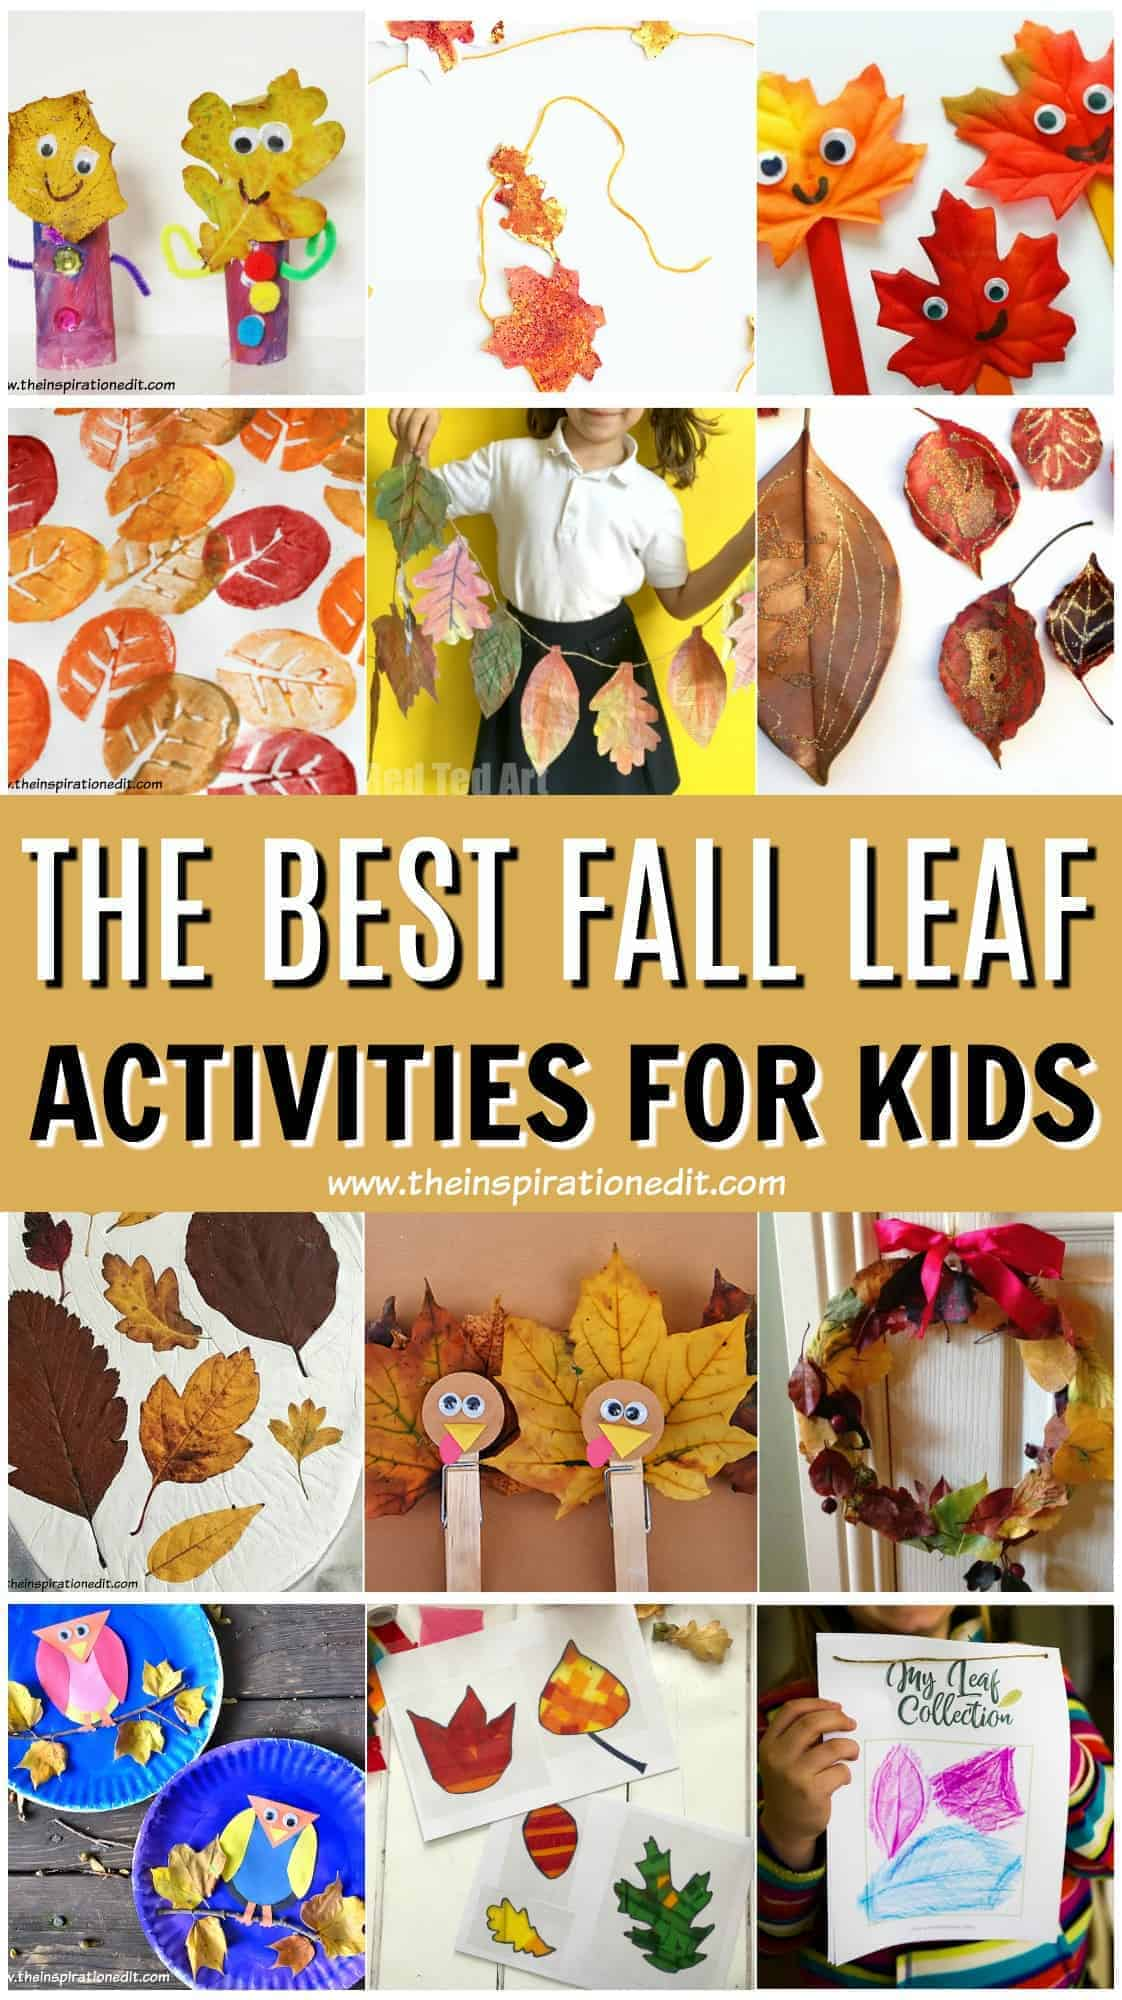 The best fall leaf activities for kids